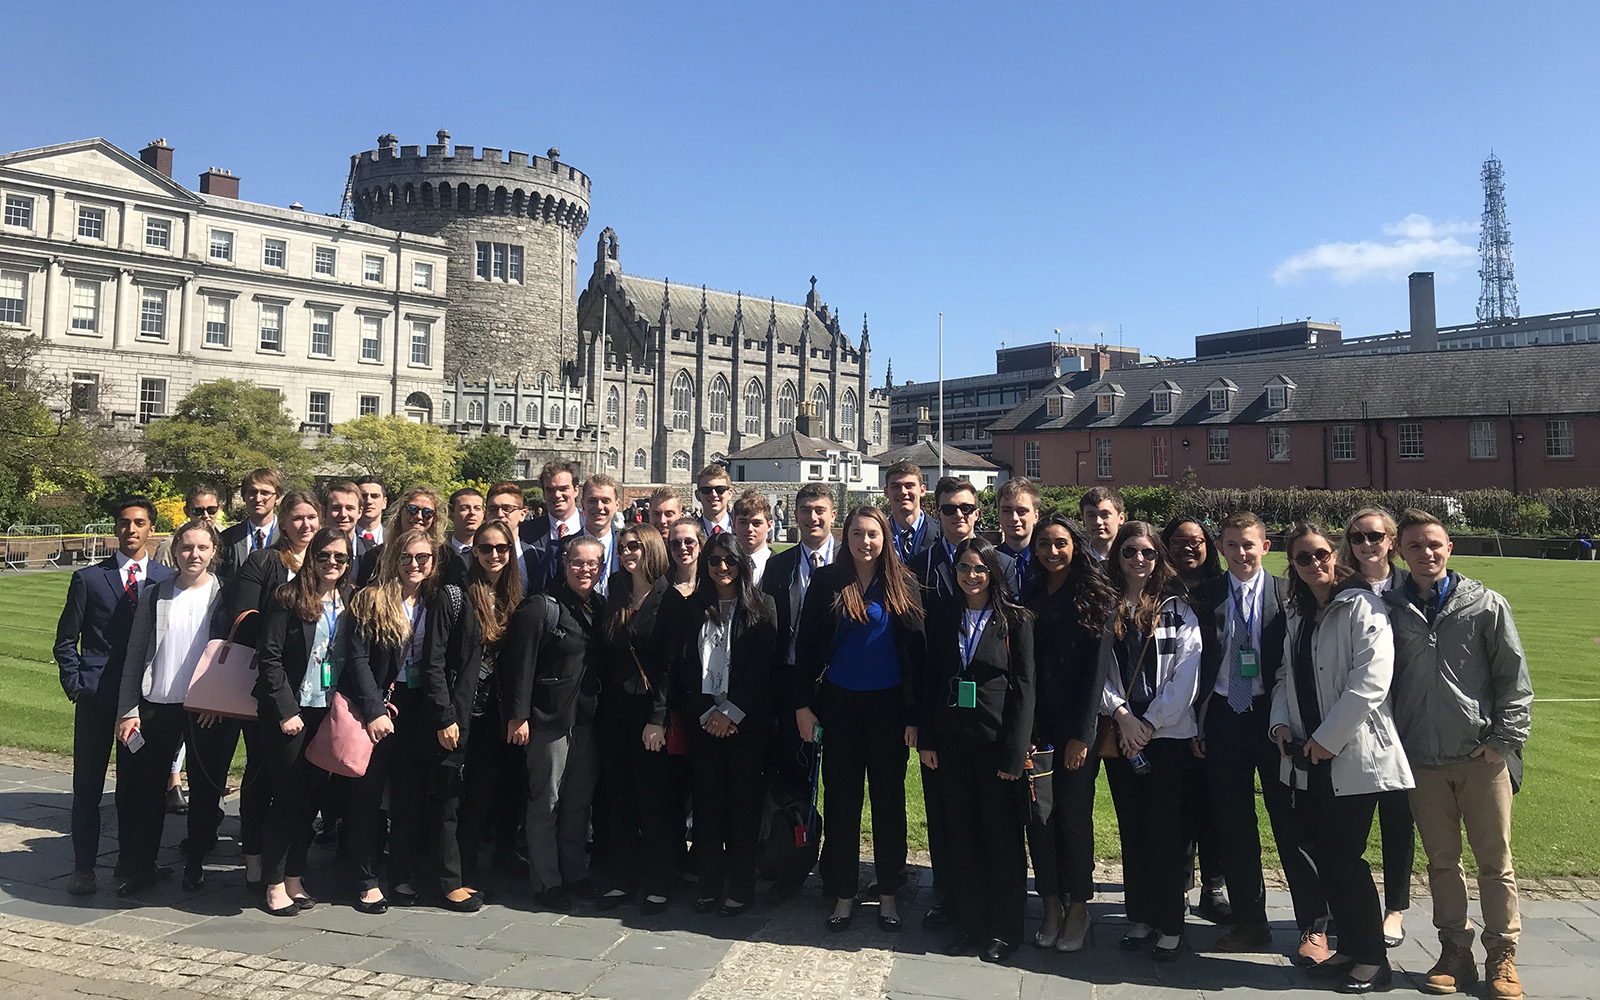 Alumnus Mike Koppel and his family have given a second, generous gift to the School of Business to support international business-immersion travel for students in the BCLC. Pictured above, UConn students stopped for a photo in front of Dublin Castle, after leaving Ireland's Squarespace marketing company during the May 2018 trip. (Courtesy of BCLC)